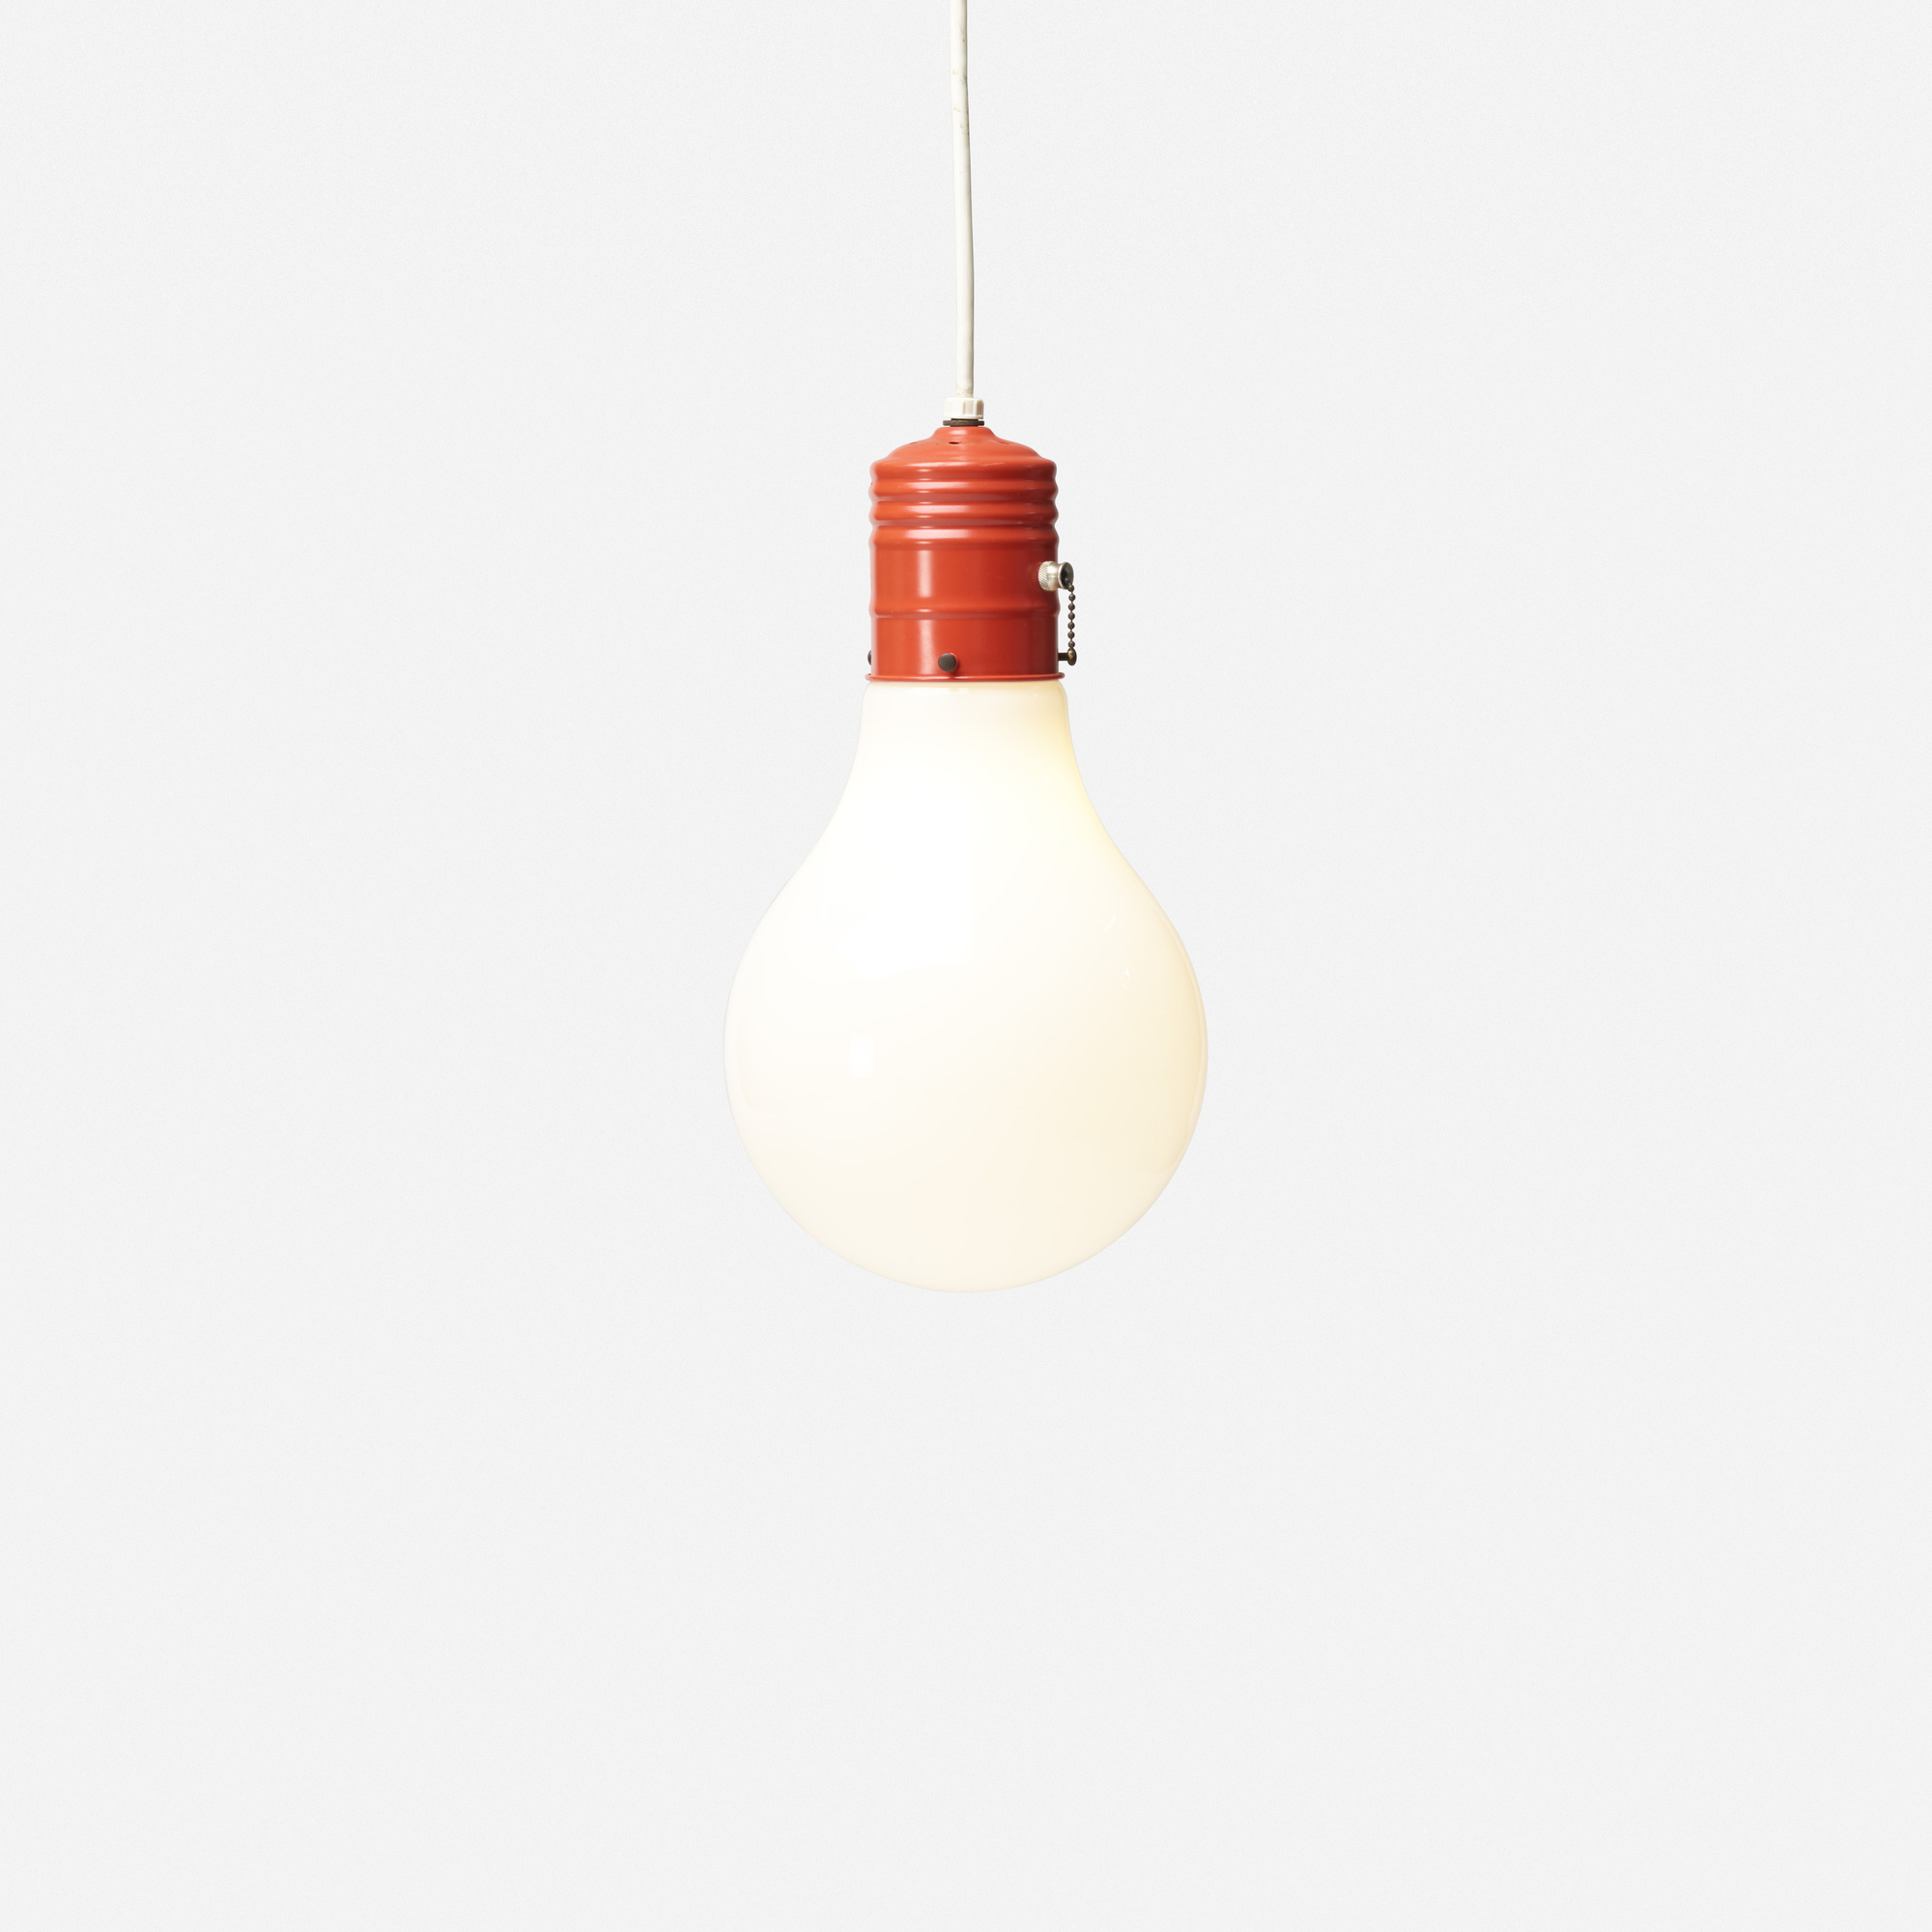 pendant efficient an tech light from design blog lighting ylighting incandescent lightbulb yes soco bulb necessities